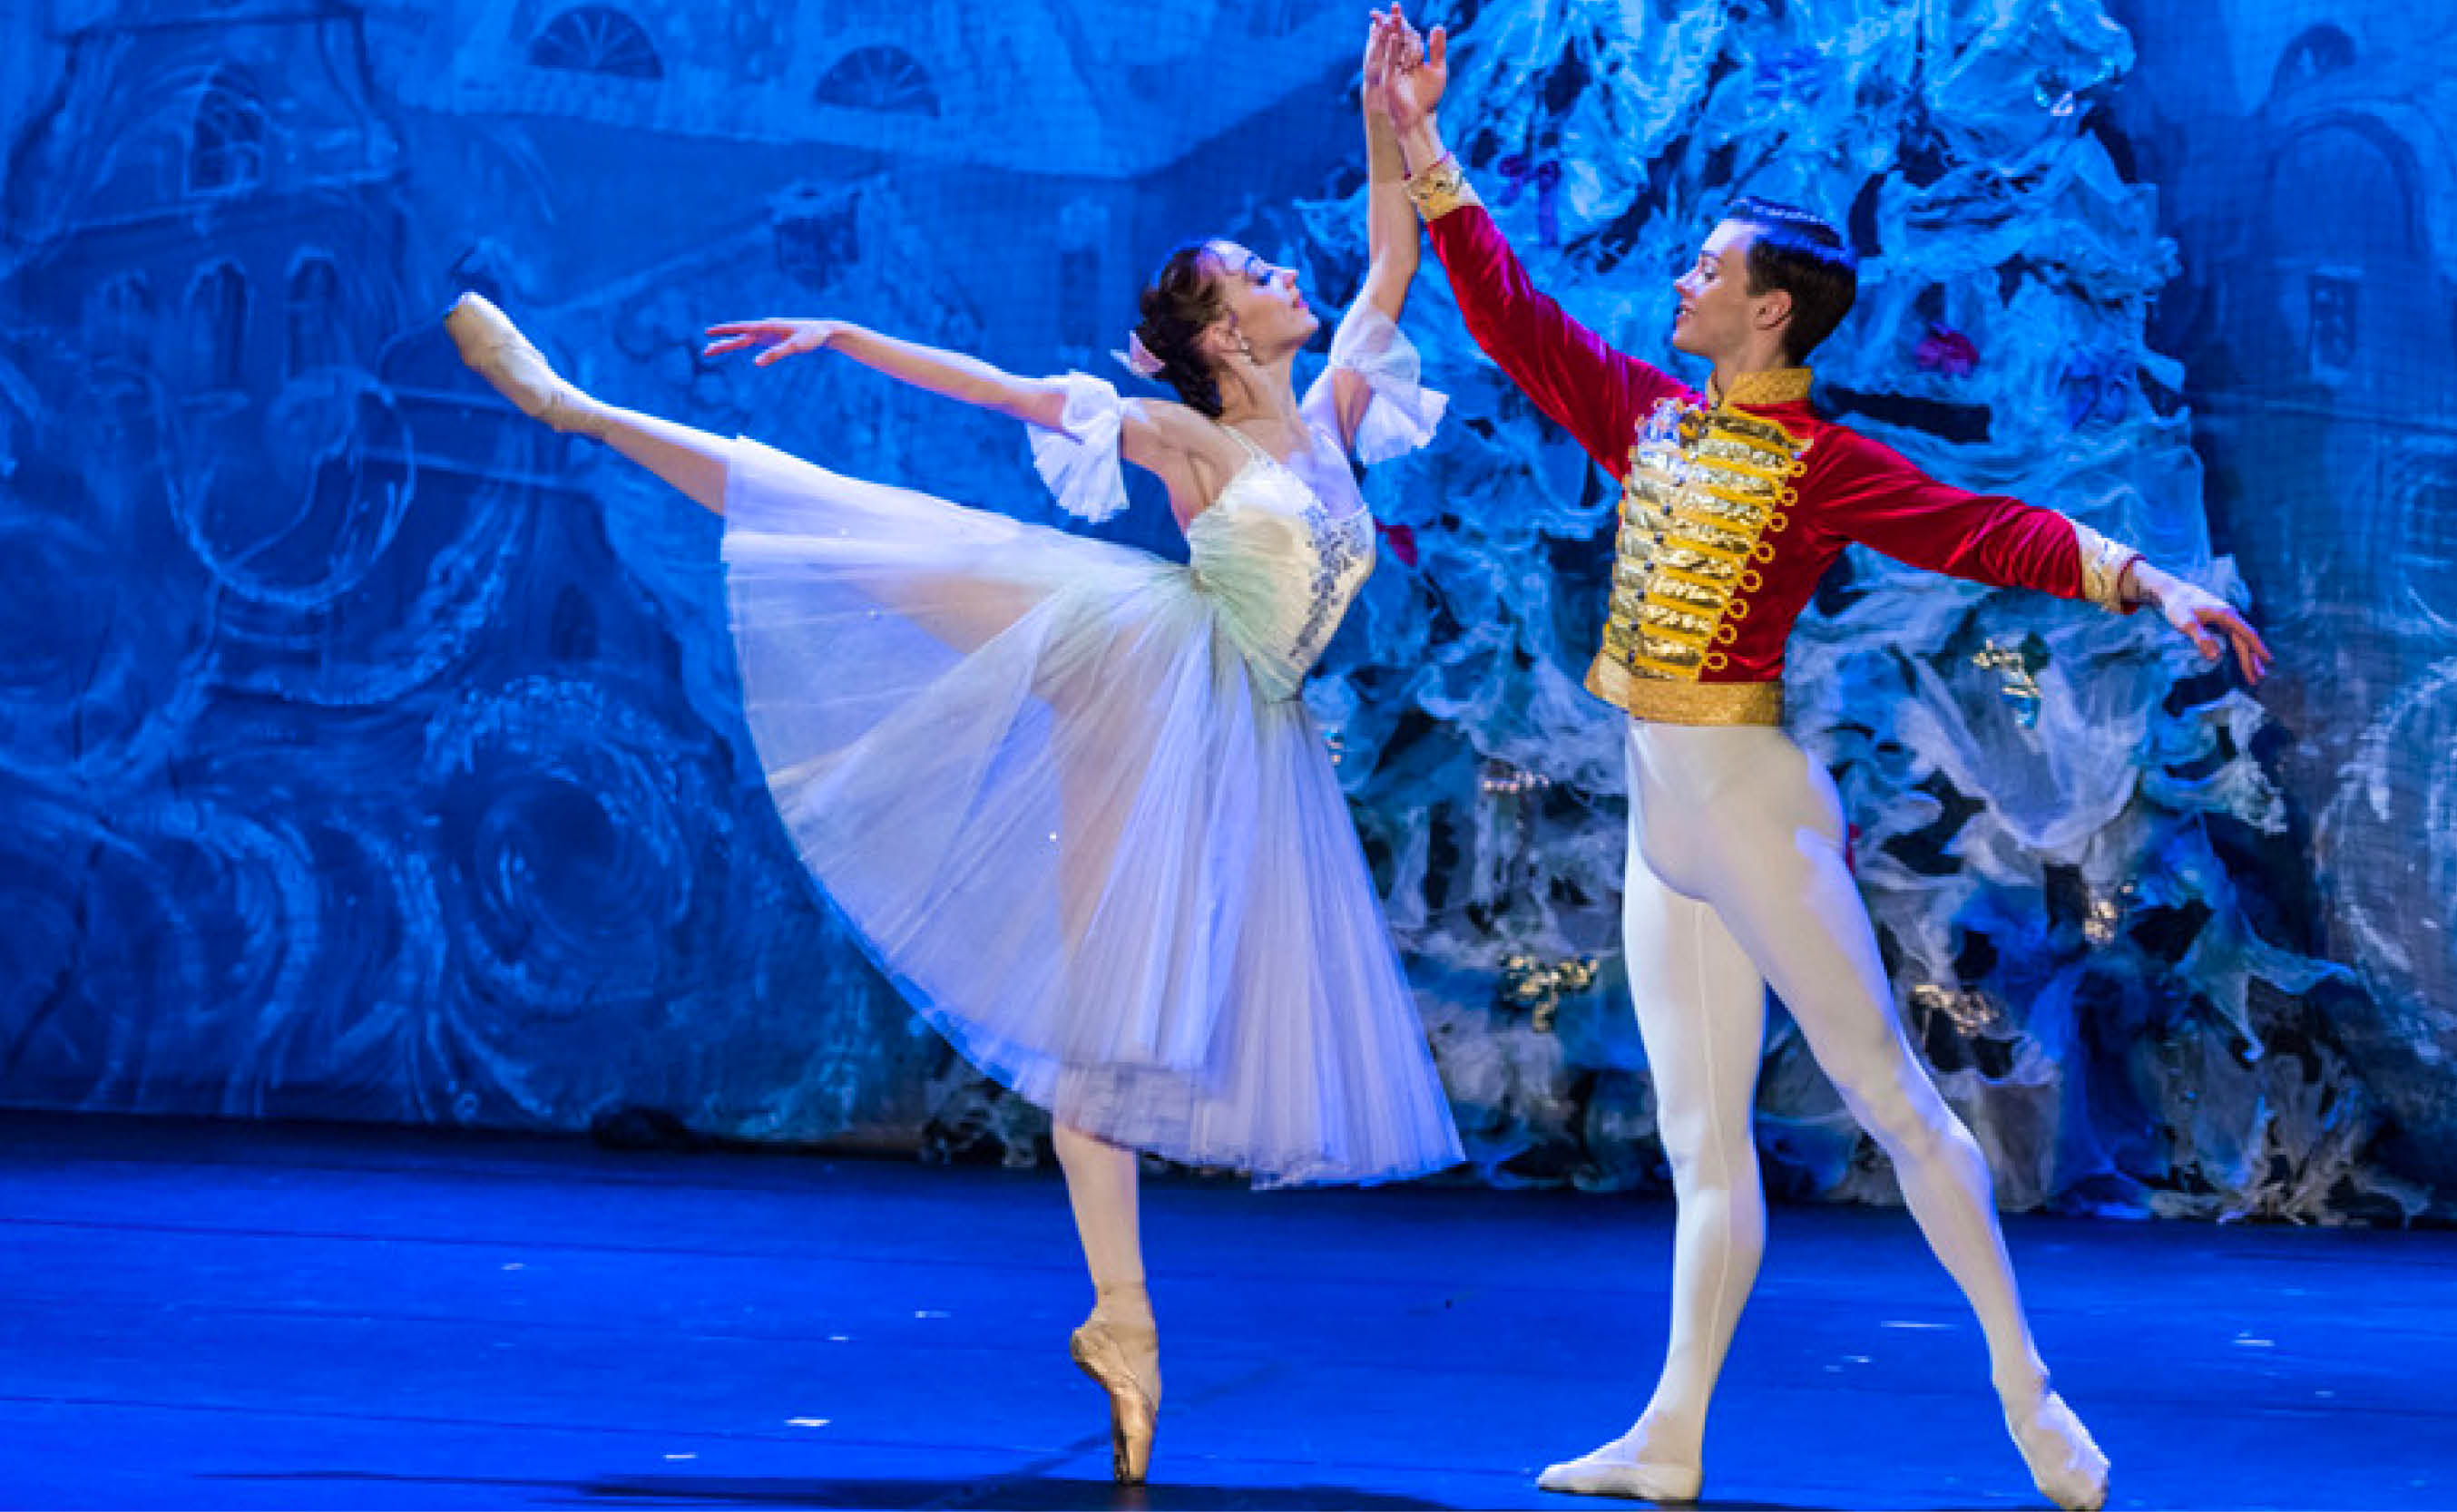 7 interesting facts about The Nutcracker that you didn't know